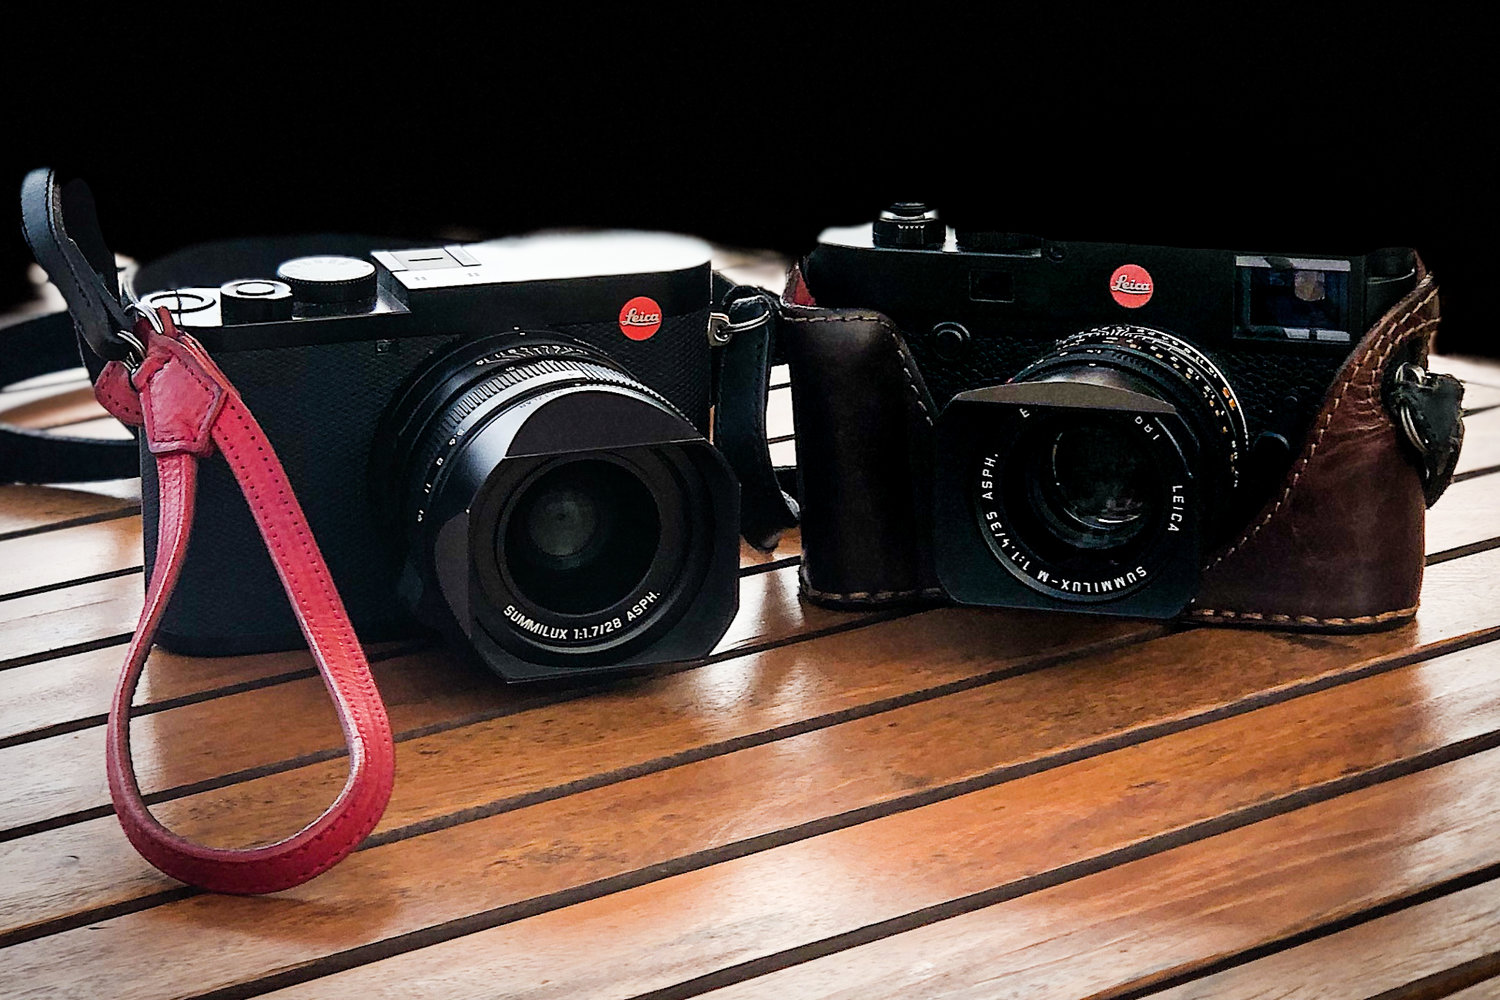 Comparison of the Leica Q2 and Leica M10 — Travel Is Beautiful